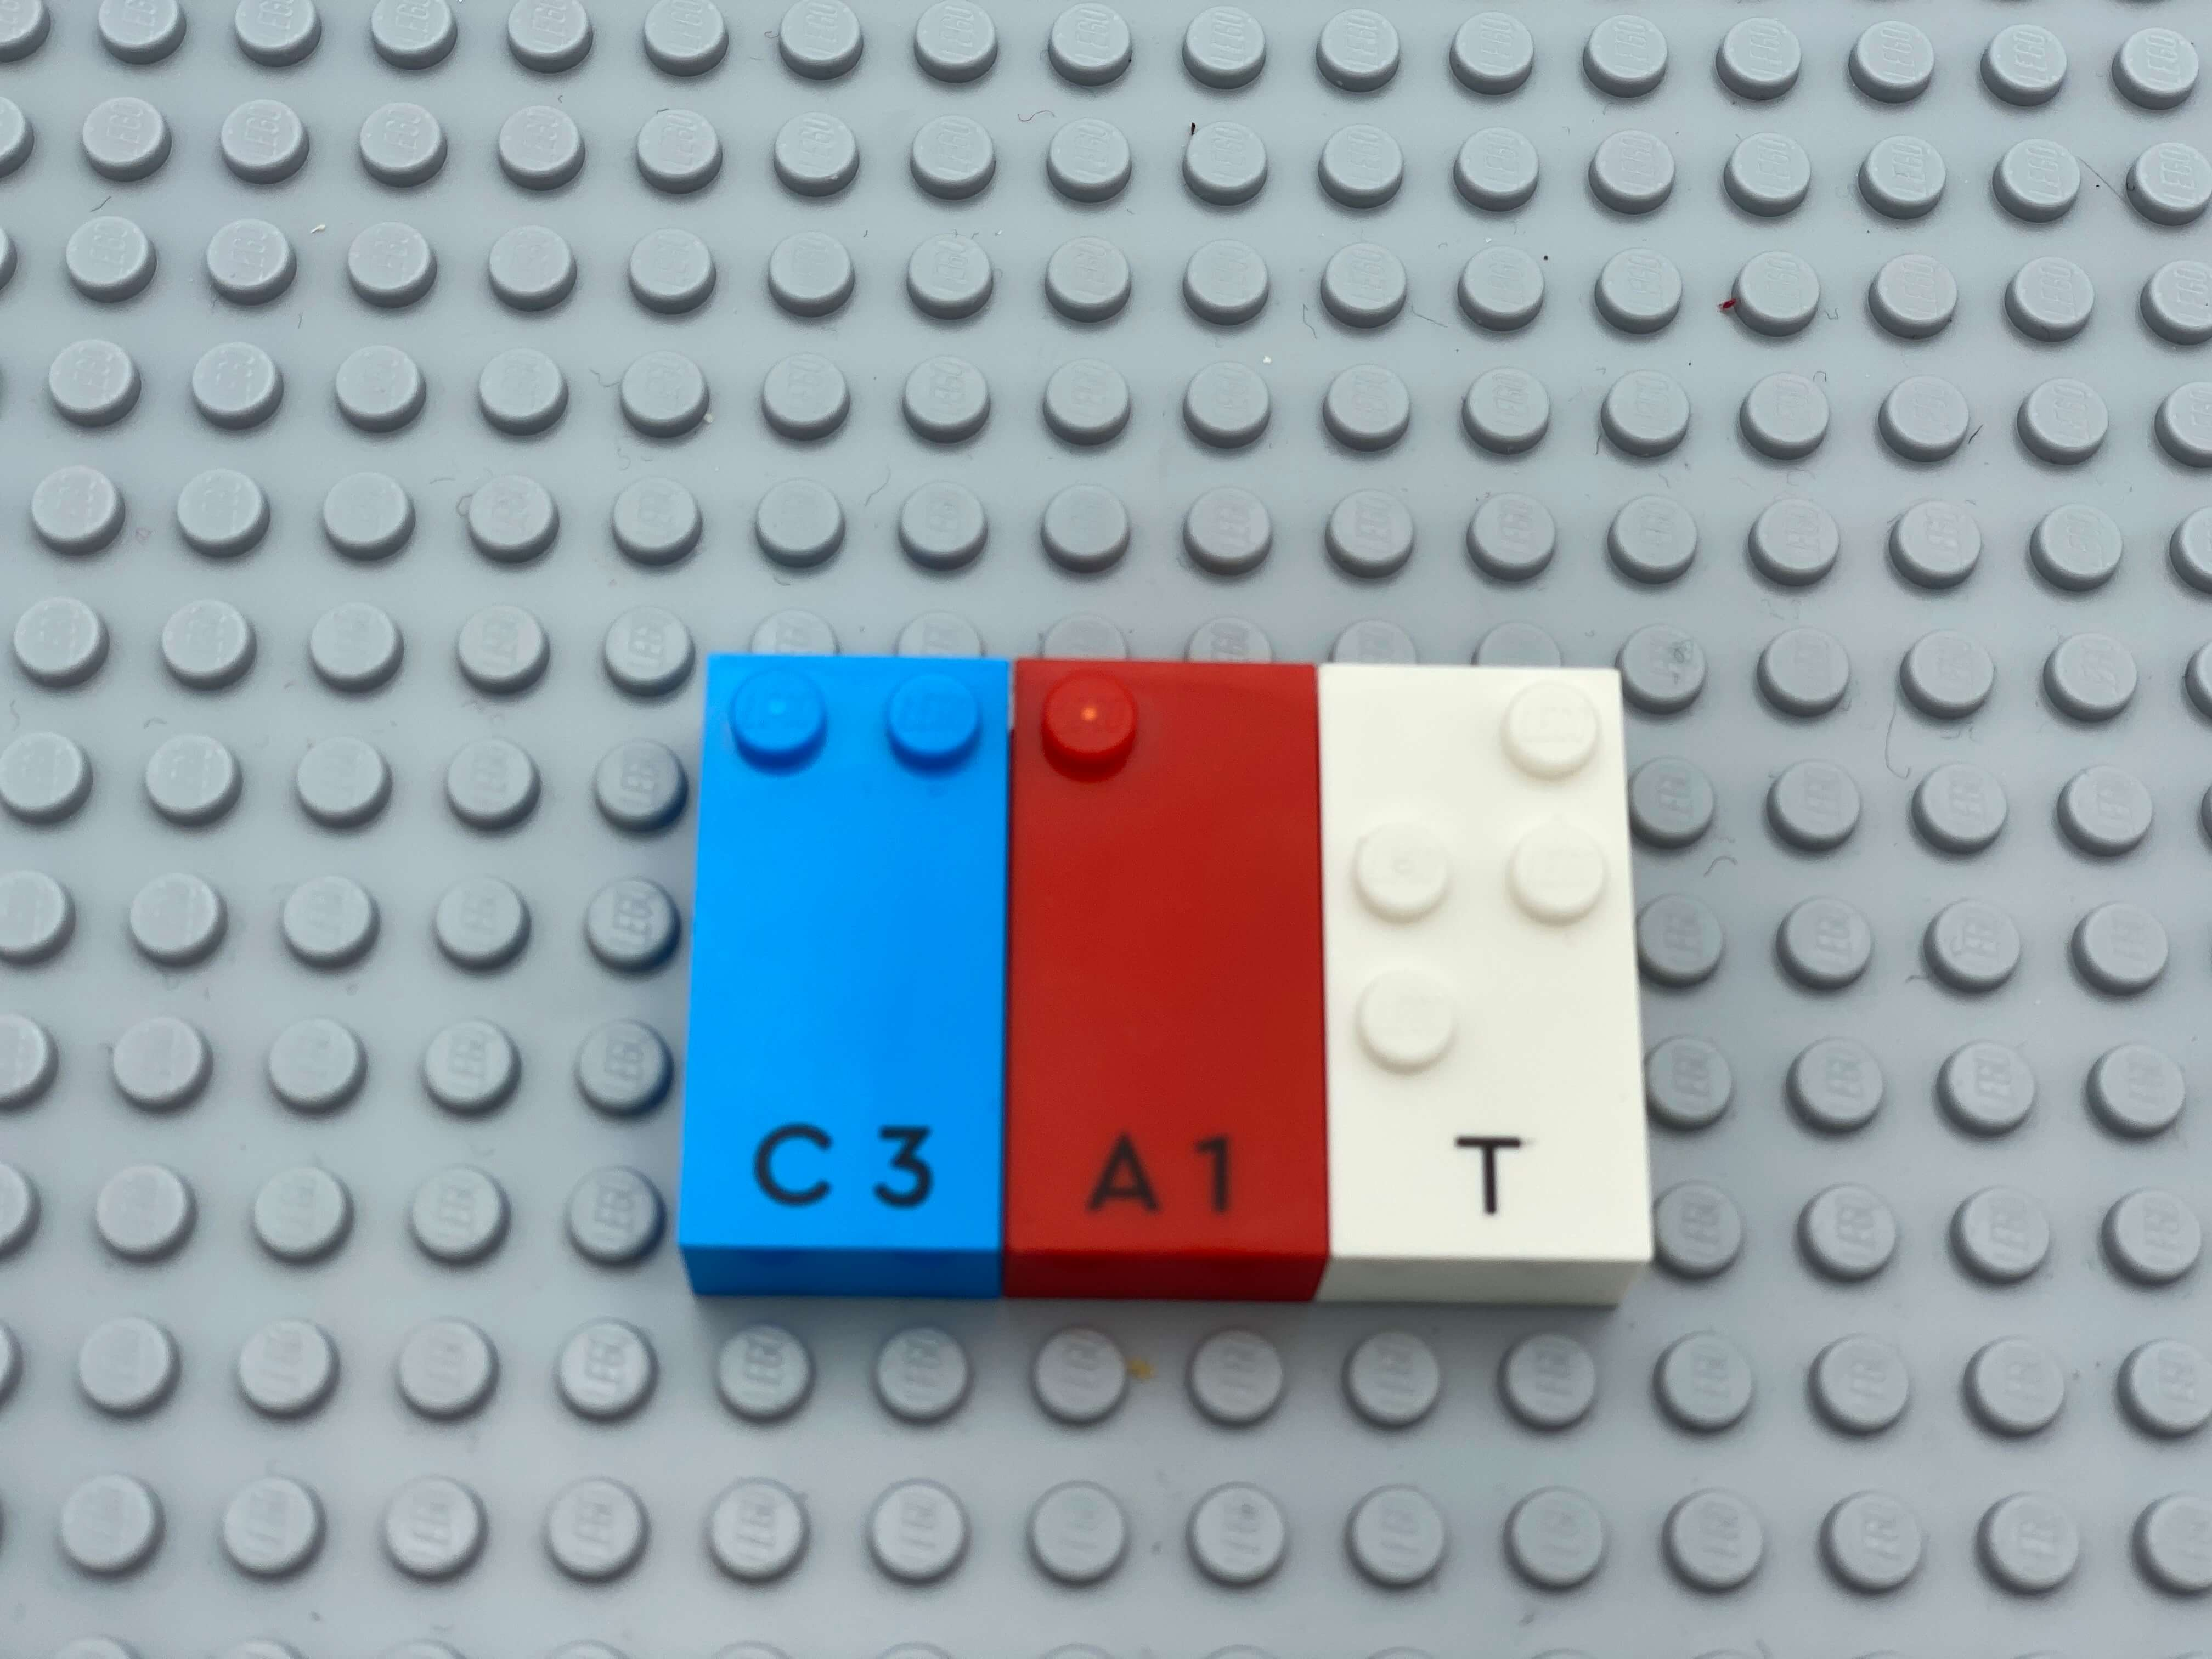 Letter bricks c, a, t (cat) aligned on the base plate.